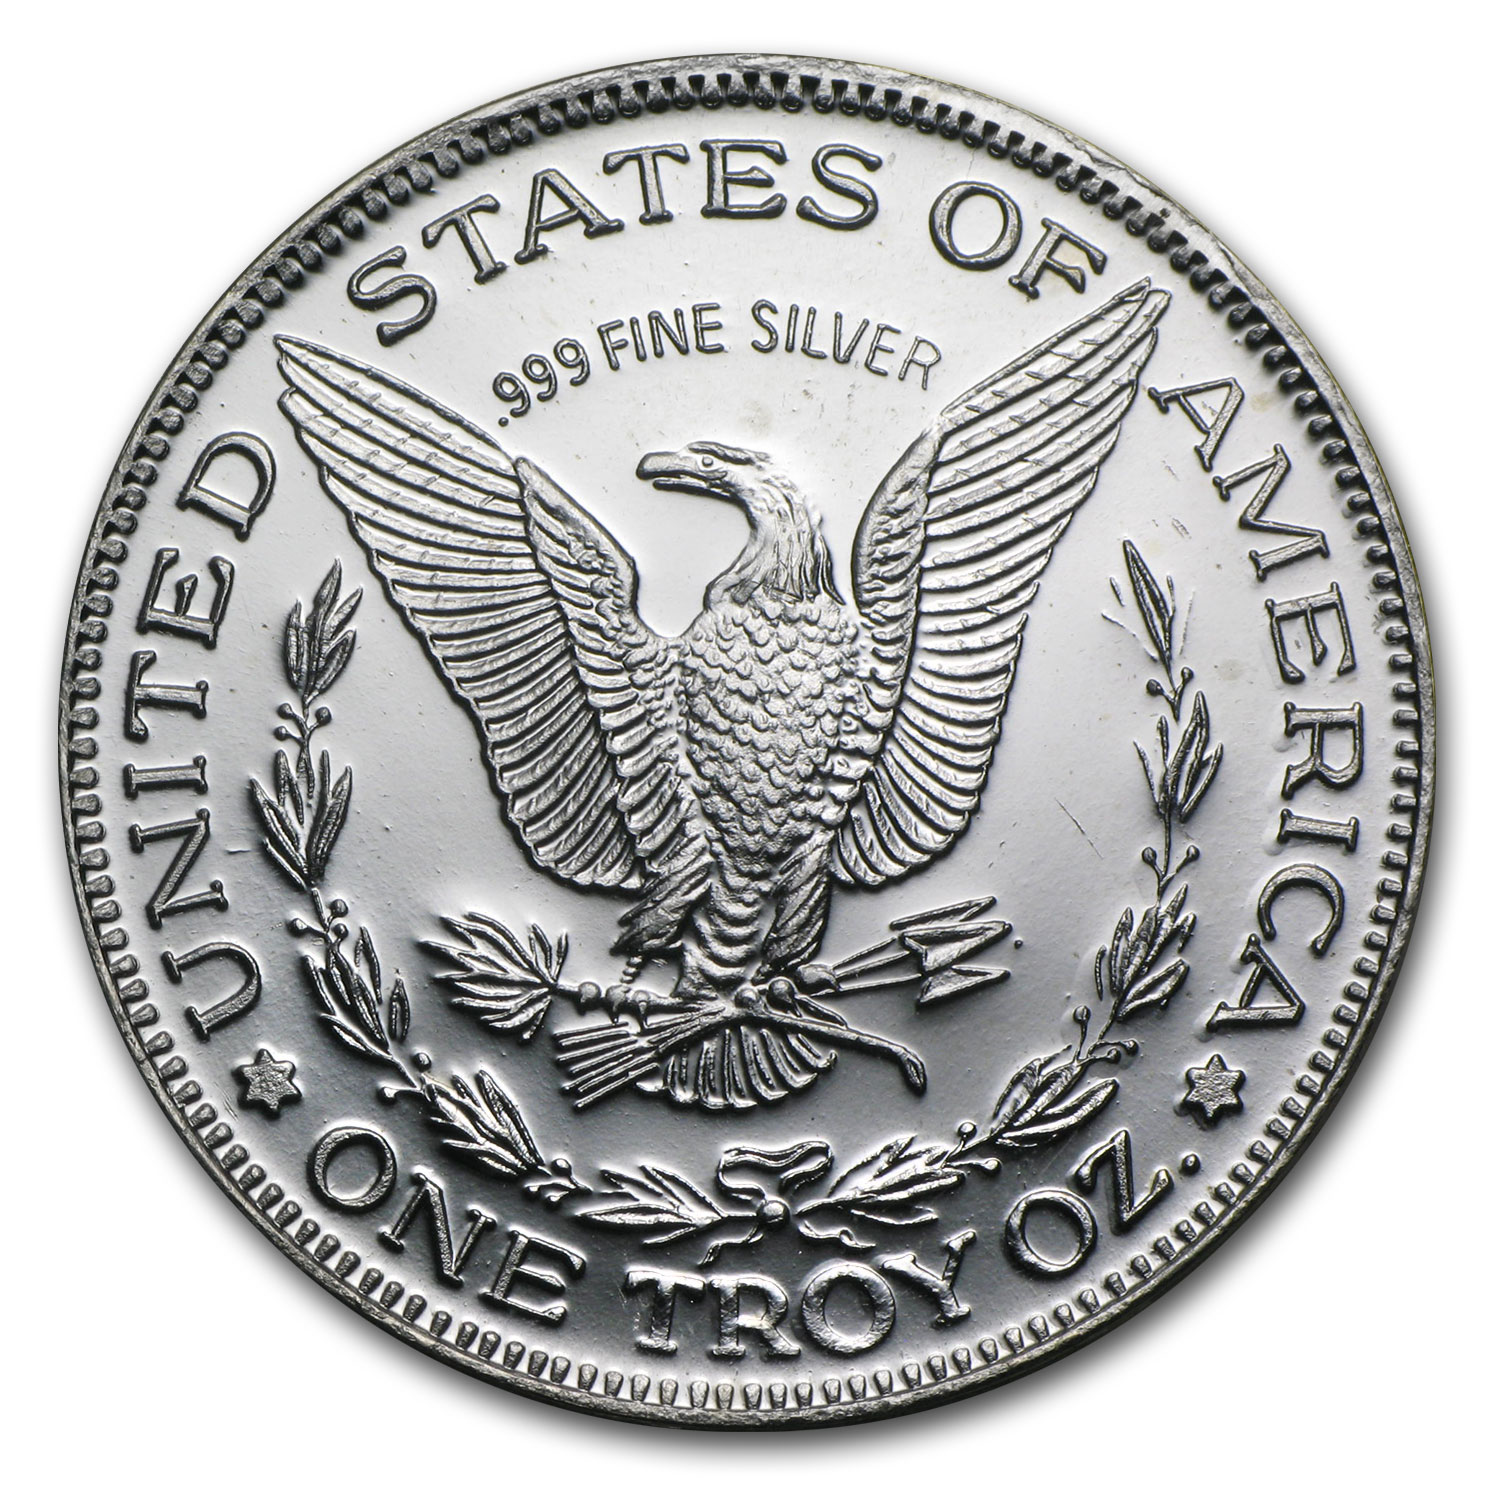 1 oz Silver Rounds - Statue of Liberty (Eternal Vigilance)